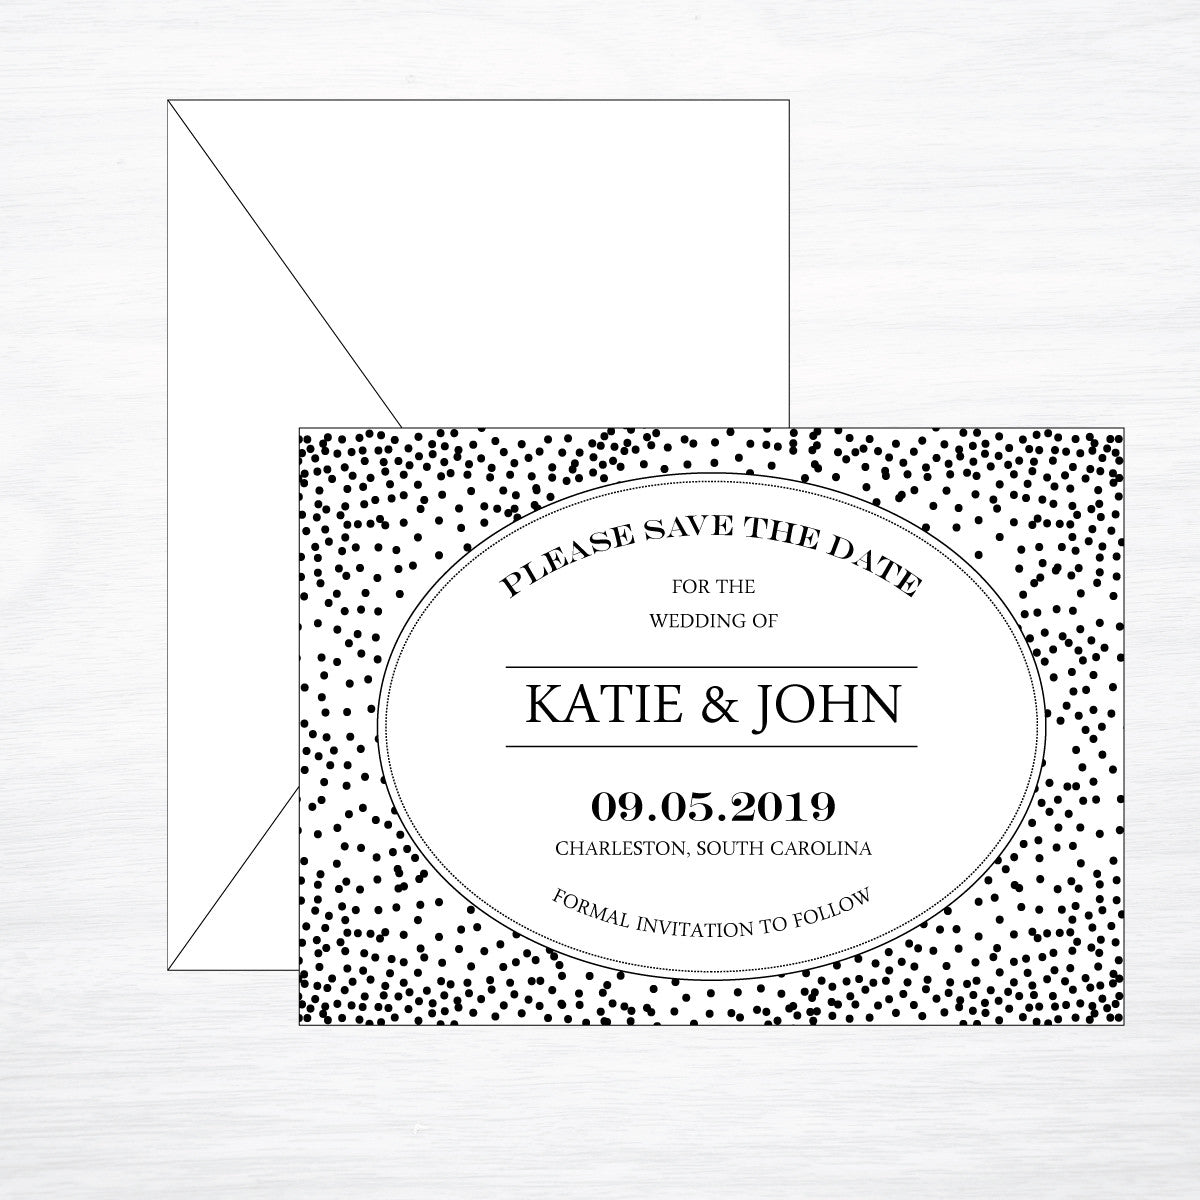 Dot | Wedding Save the Date - shop greeting cards, handmade stationery, & wedding invitations by dodeline design - 1